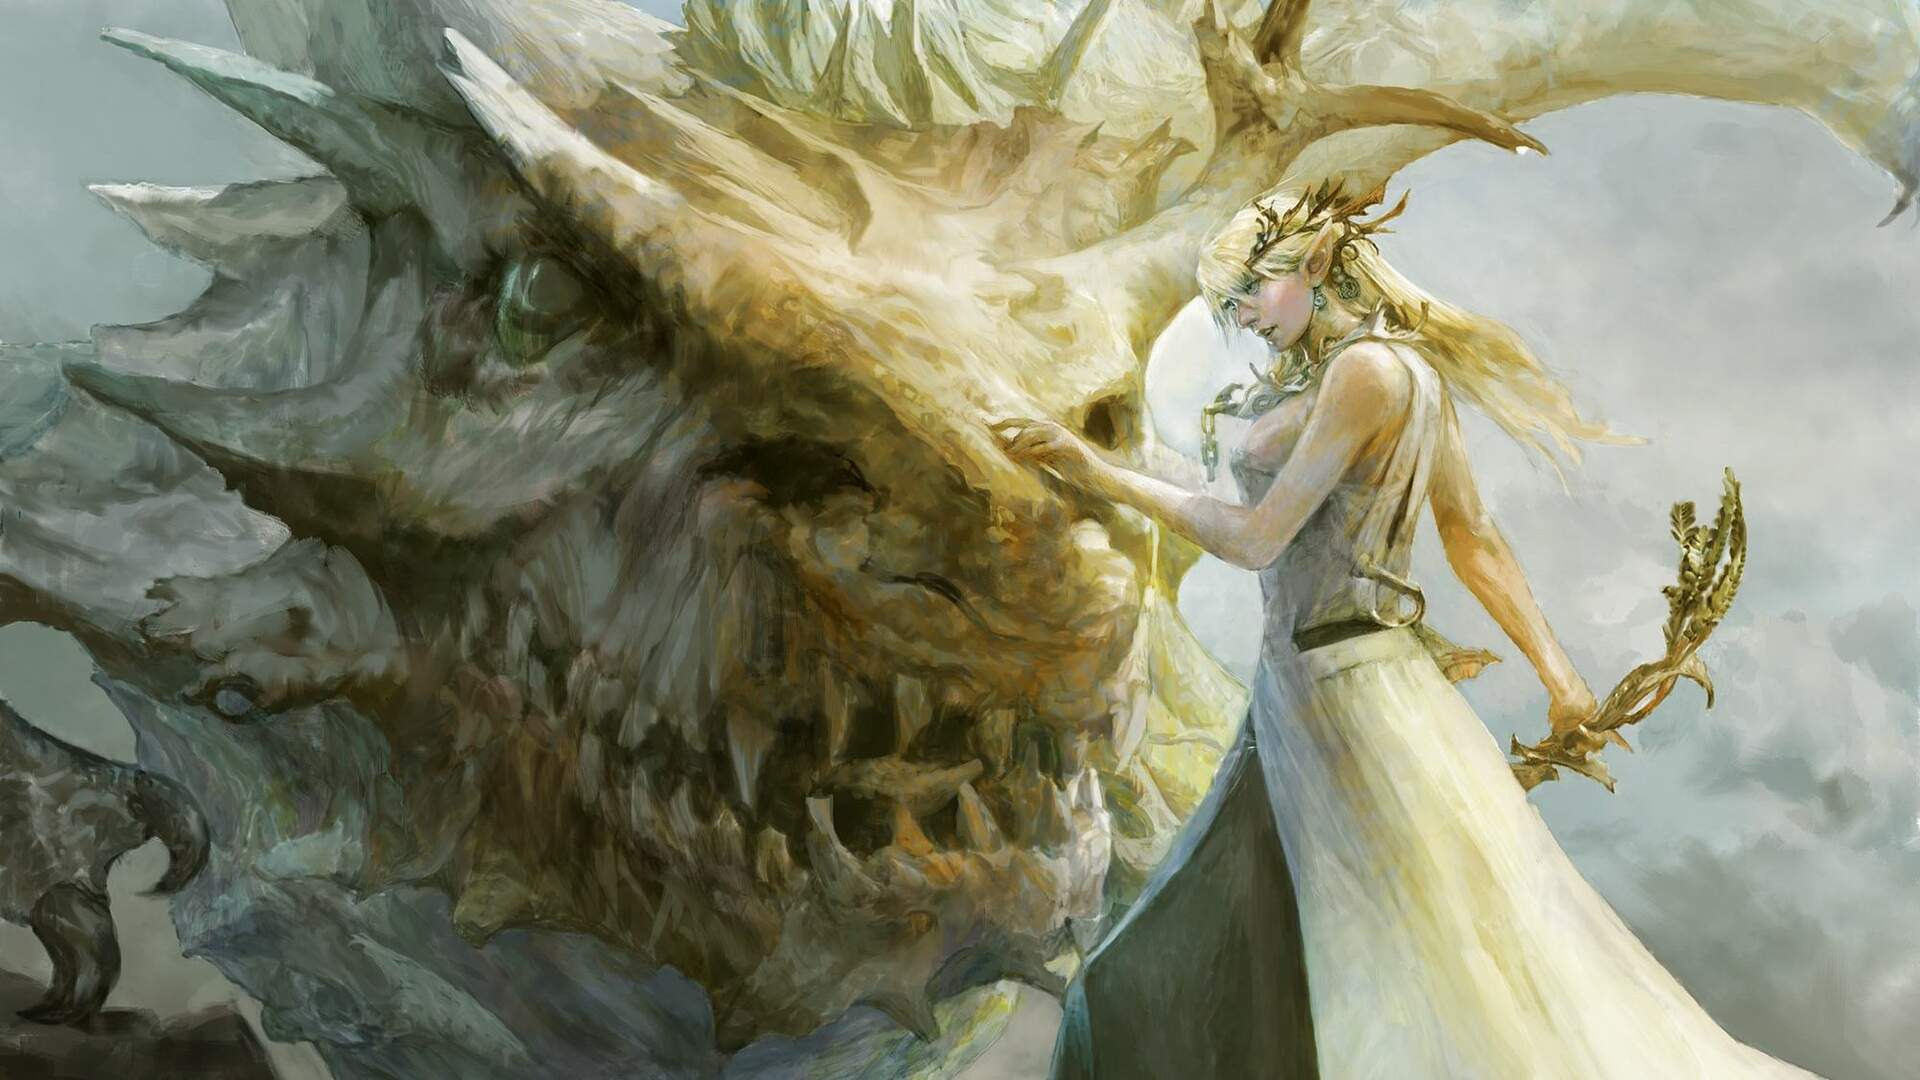 Studio Istolia Is Closed And Project Prelude Rune Canceled, Square Enix Confirms